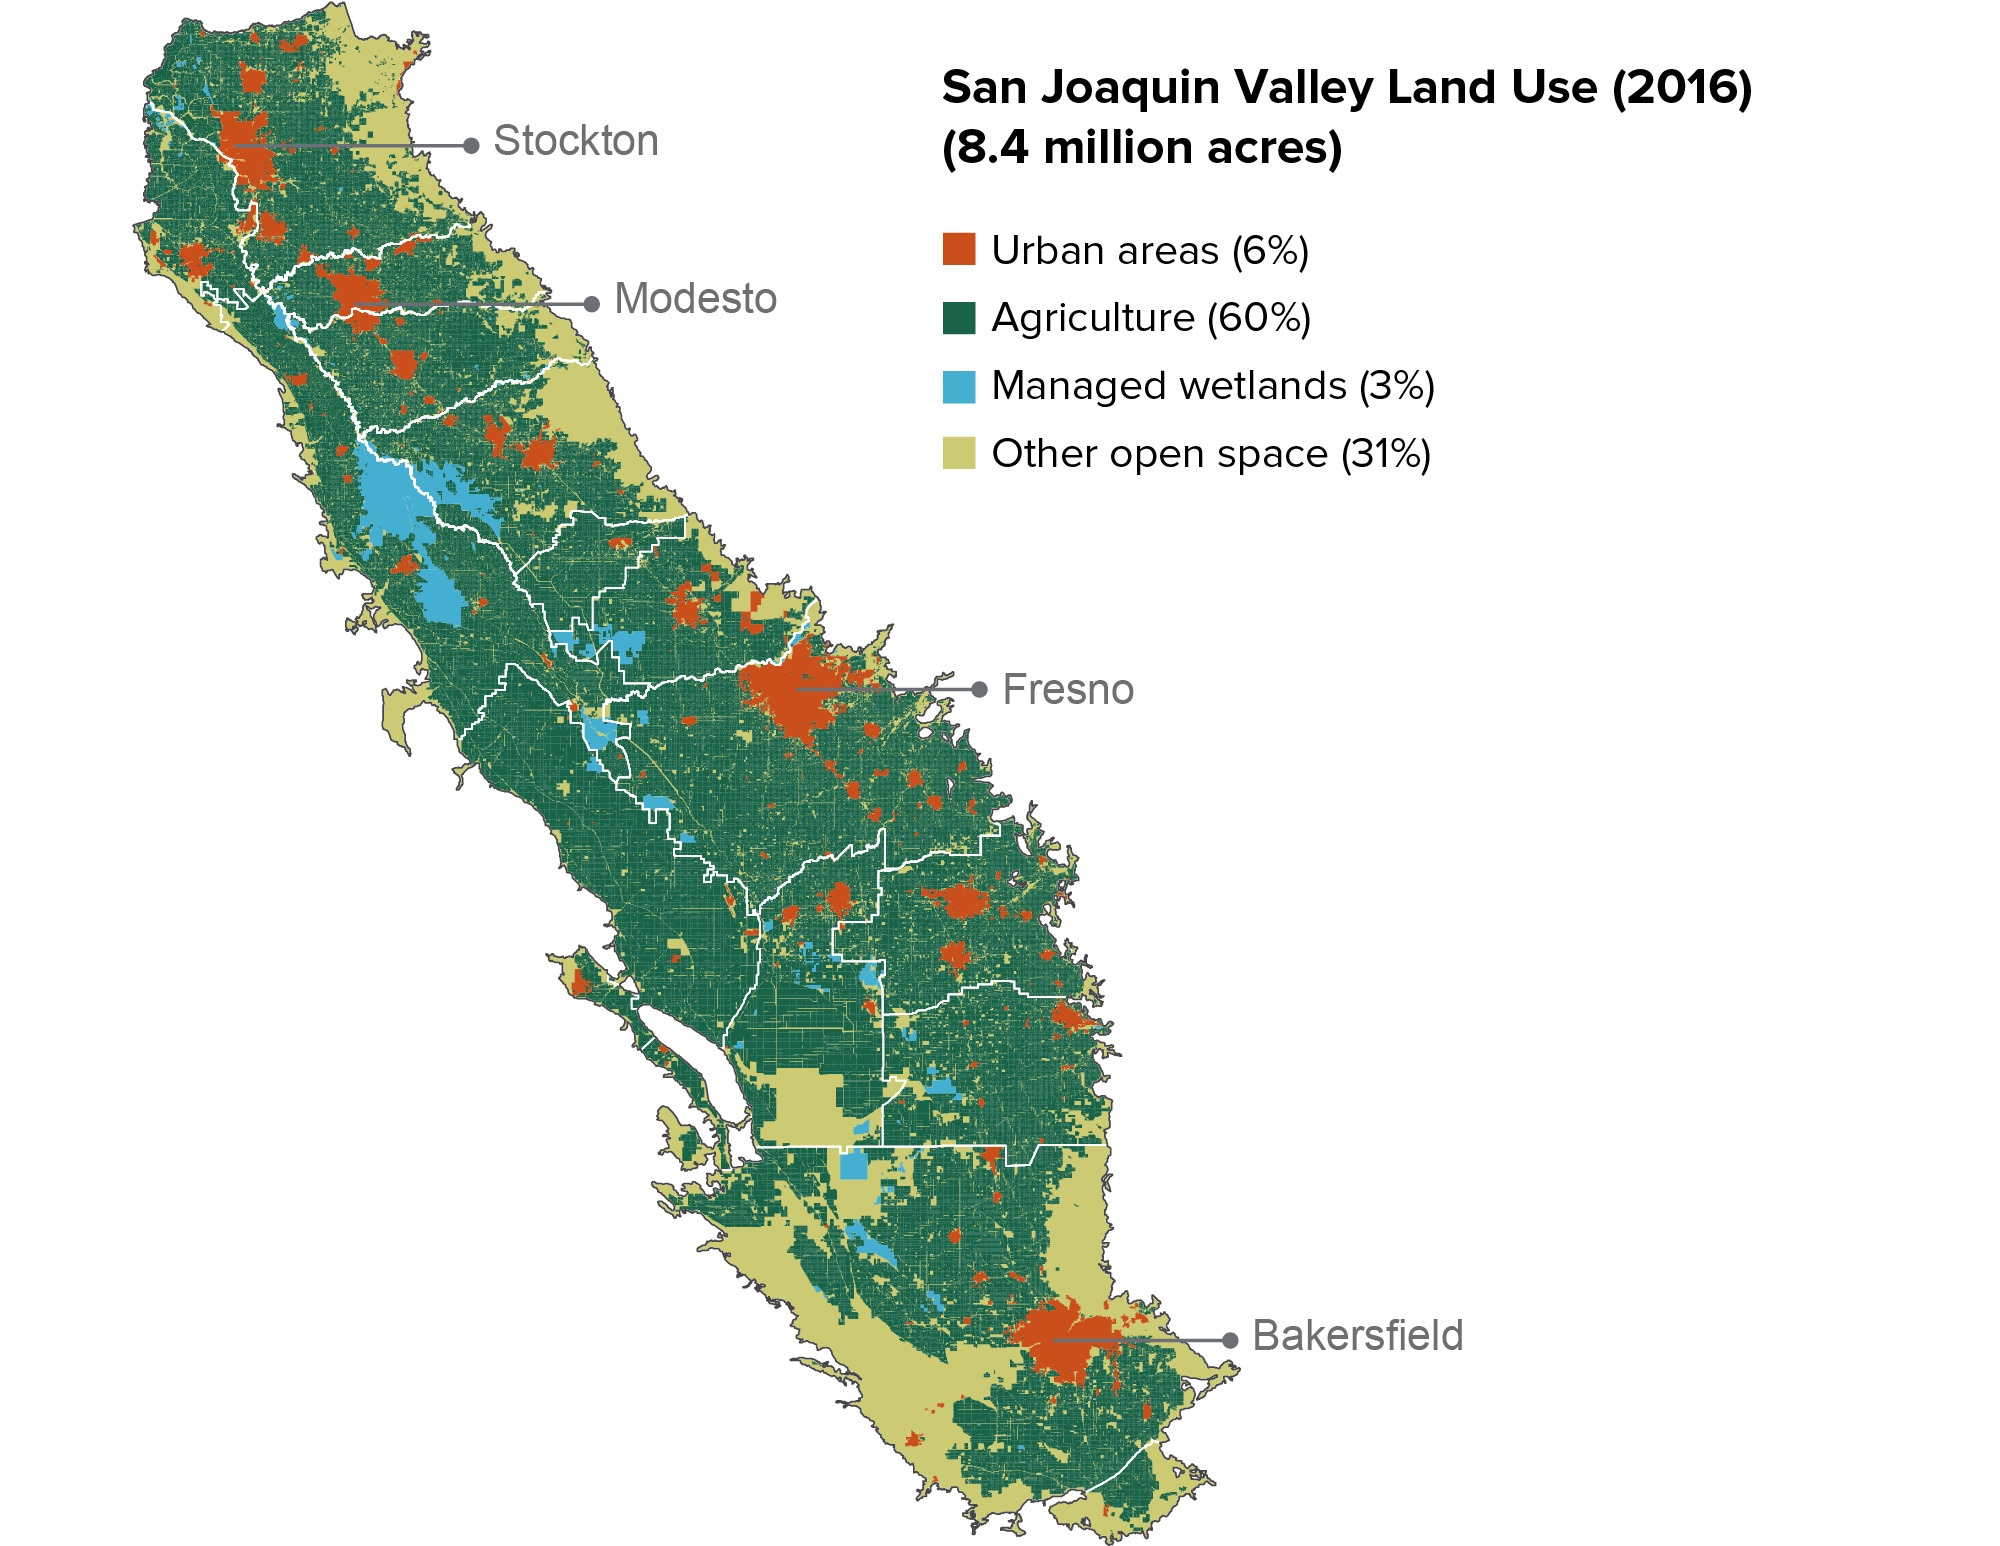 figure - The San Joaquin Valleys urban centers are surrounded by farmland